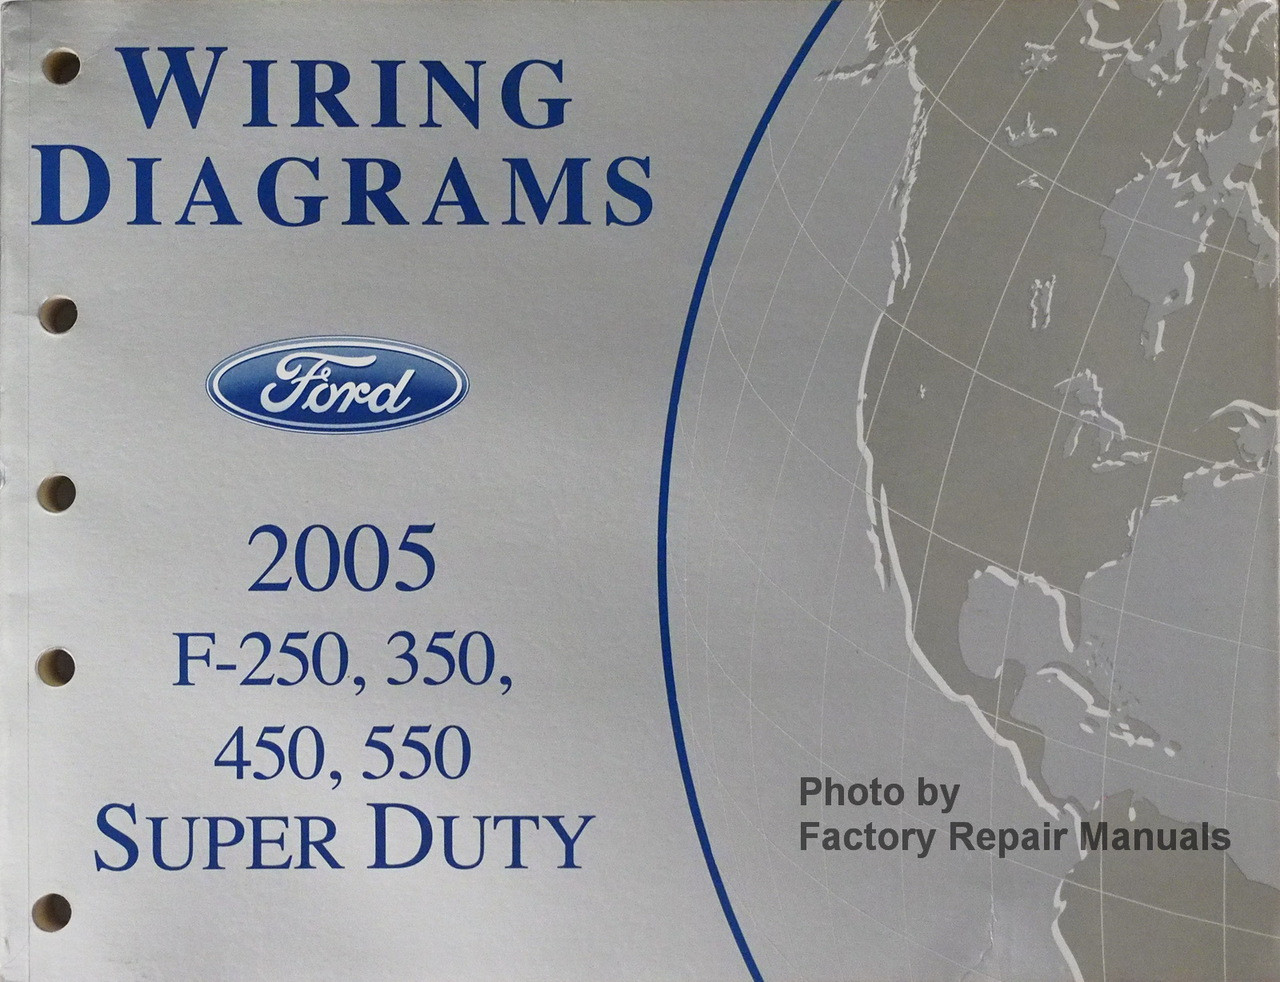 Ford Truck Wiring Diagram On Sale 1949 Ford Wiring Diagram 1940 Truck